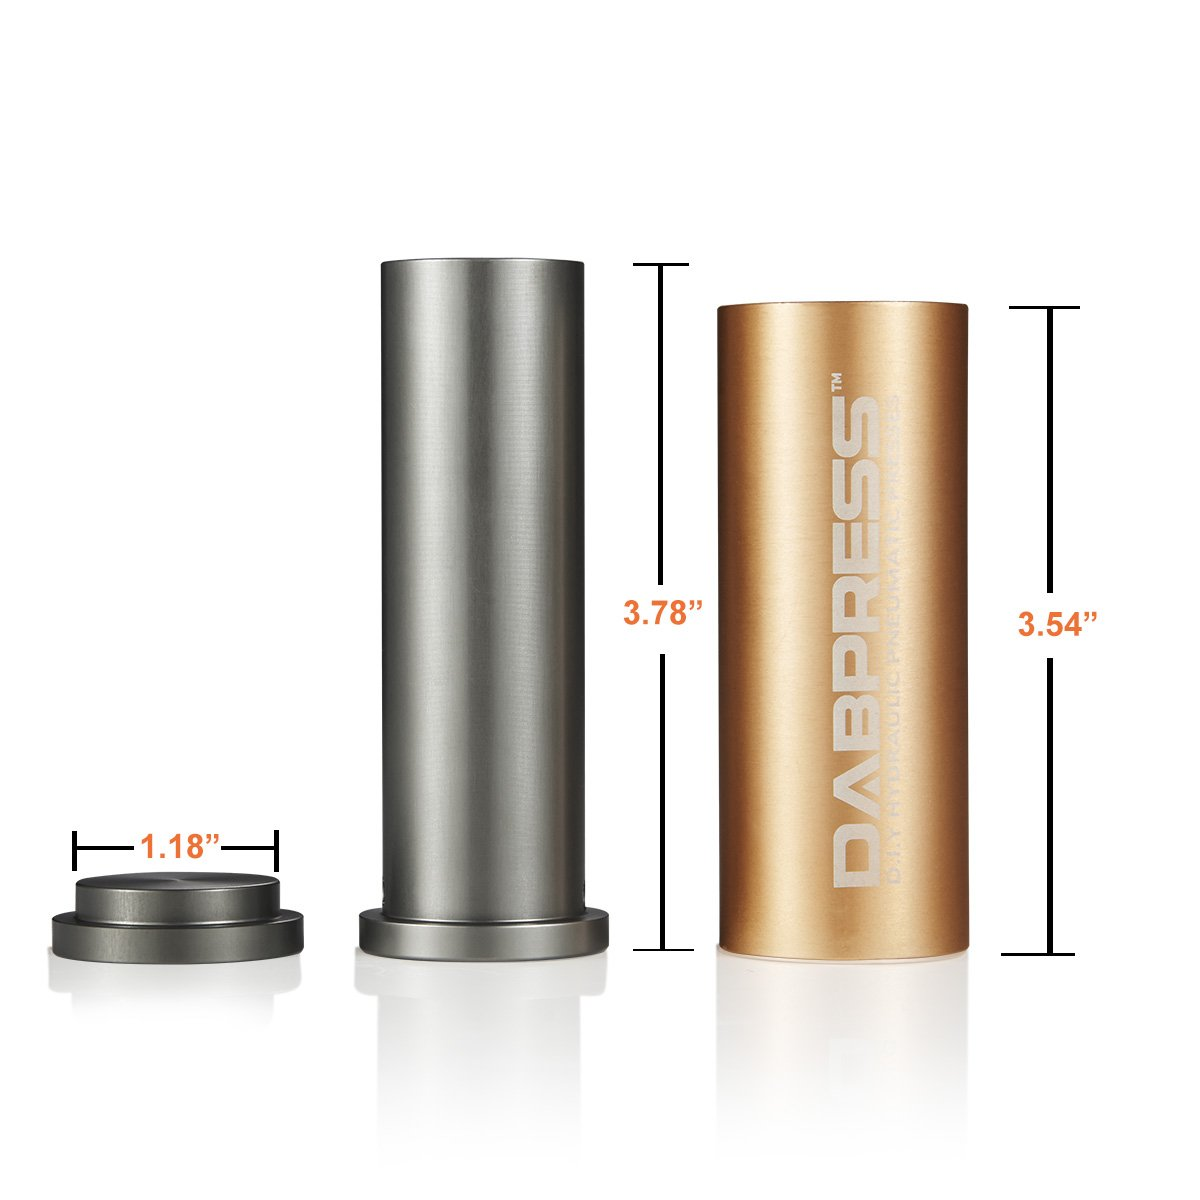 Pair It with 2x4 Inch Filter Bag Made of Anodized Aluminum iBudtek dp-pm3015r Cylinder Pre Press Mold